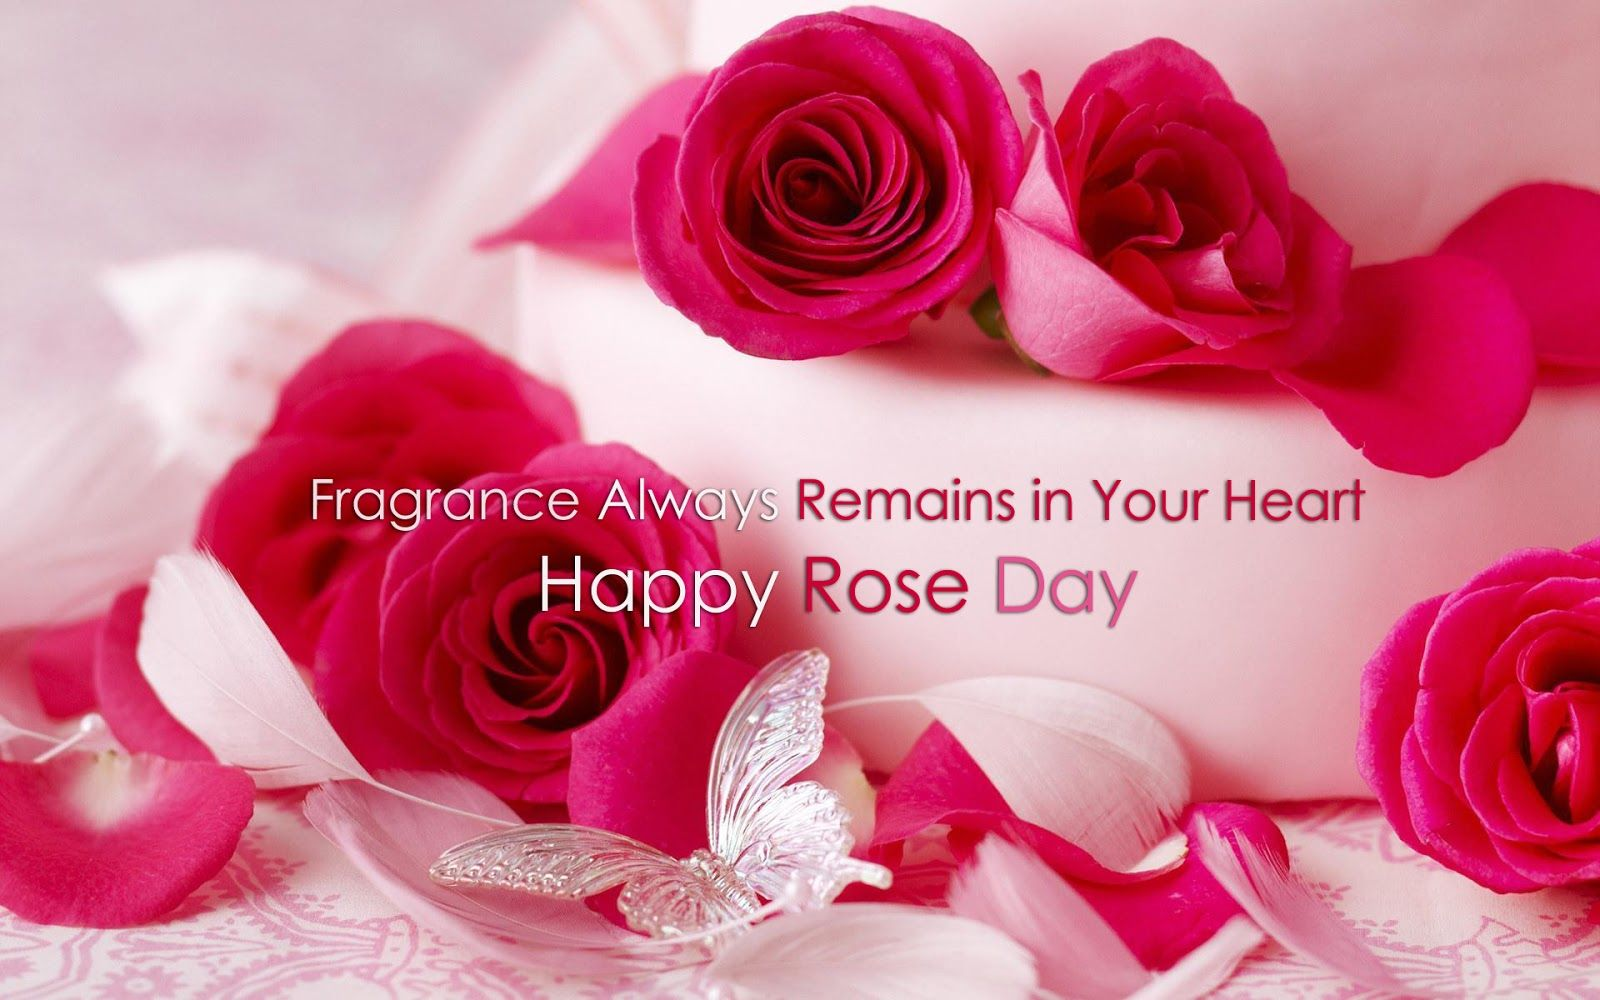 Rose Day 2016 Date Quotes And Wishes 7th Feb Rose Day Happy Valentine Beautiful Flowers Hd Wallpapers Beautiful Flowers Images Beautiful Flowers Pictures